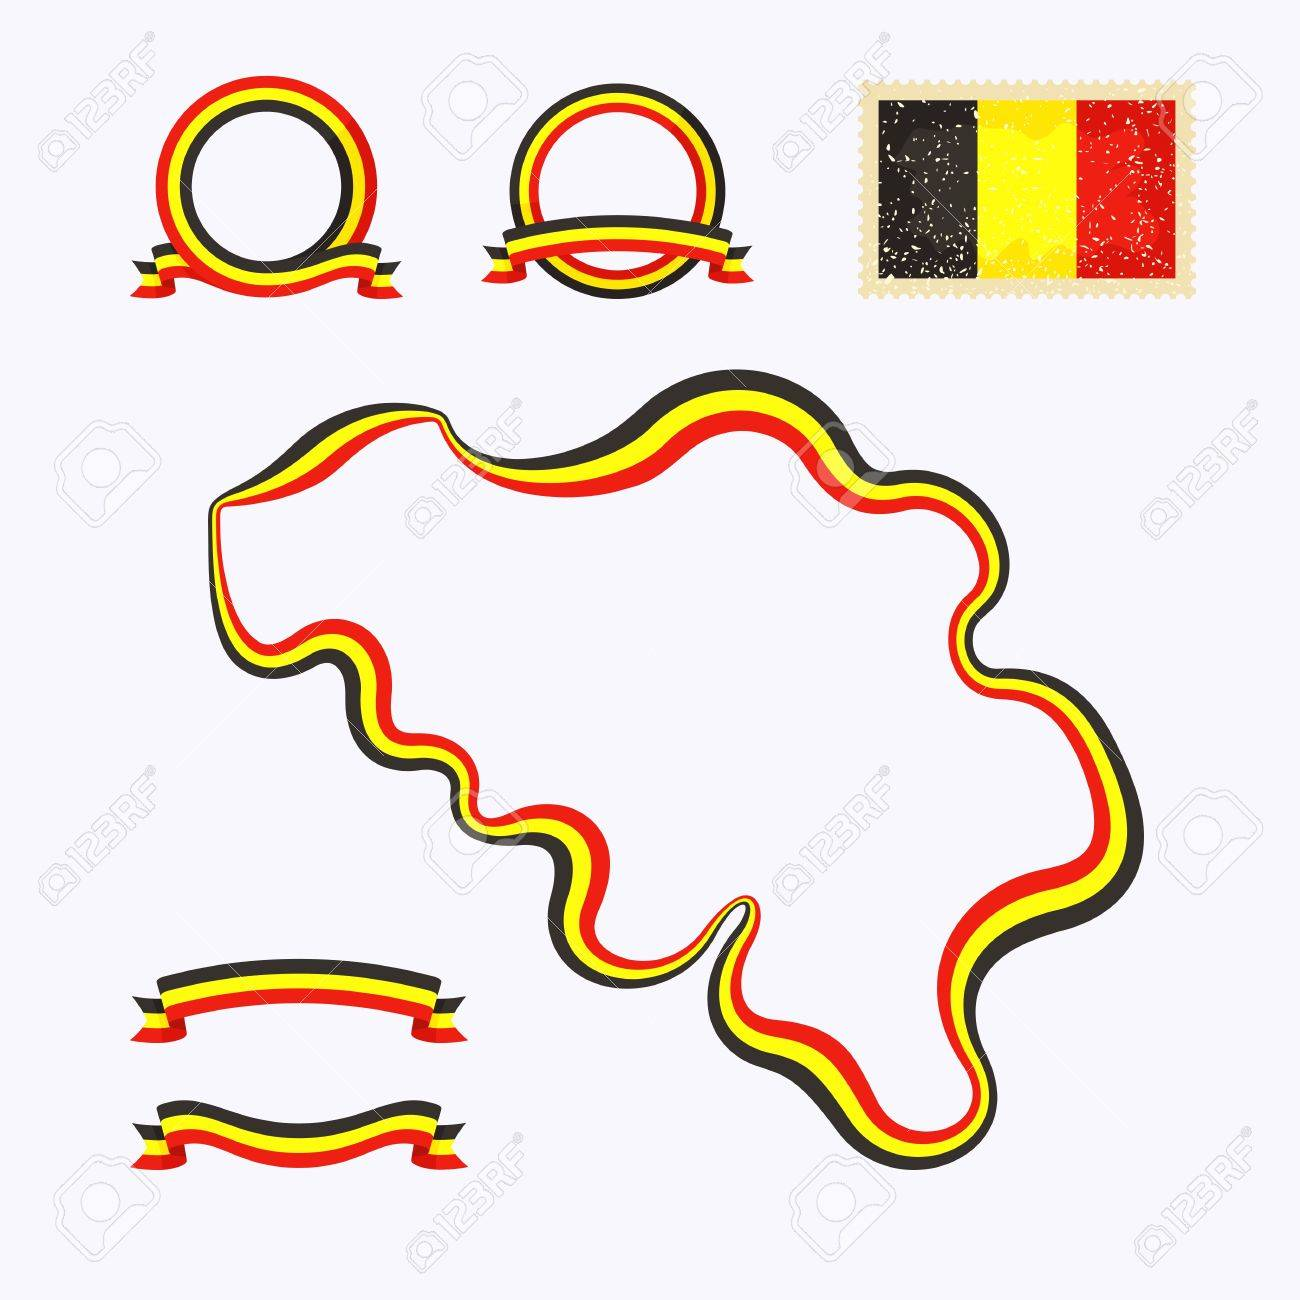 Outline map of Belgium  Border is marked with a ribbon in the national colors  The package contains a stamp with flag and frames  The file is made with no transparencies and gradients Stock Vector - 23089522